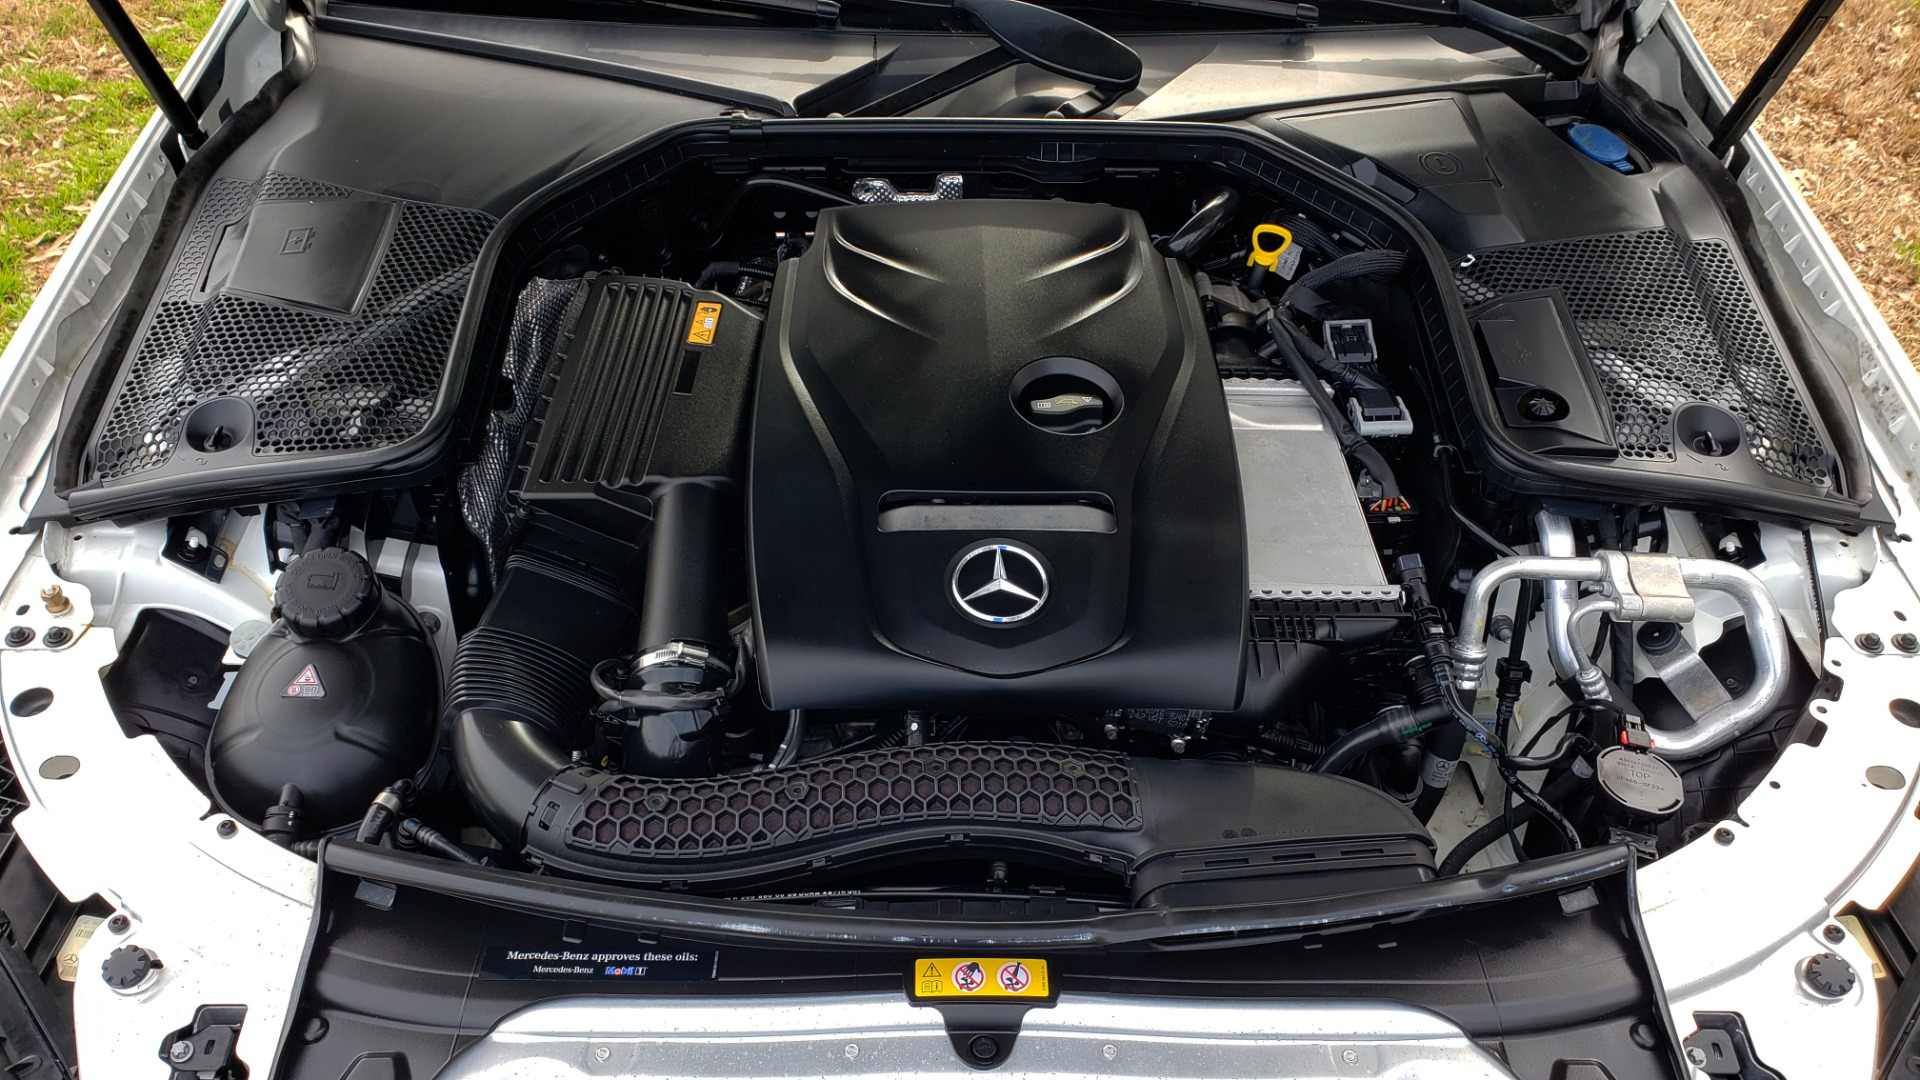 Used 2017 Mercedes-Benz C-CLASS C 300 / PREM PKG / PANO-ROOF / REARVIEW / HTD STS for sale Sold at Formula Imports in Charlotte NC 28227 17